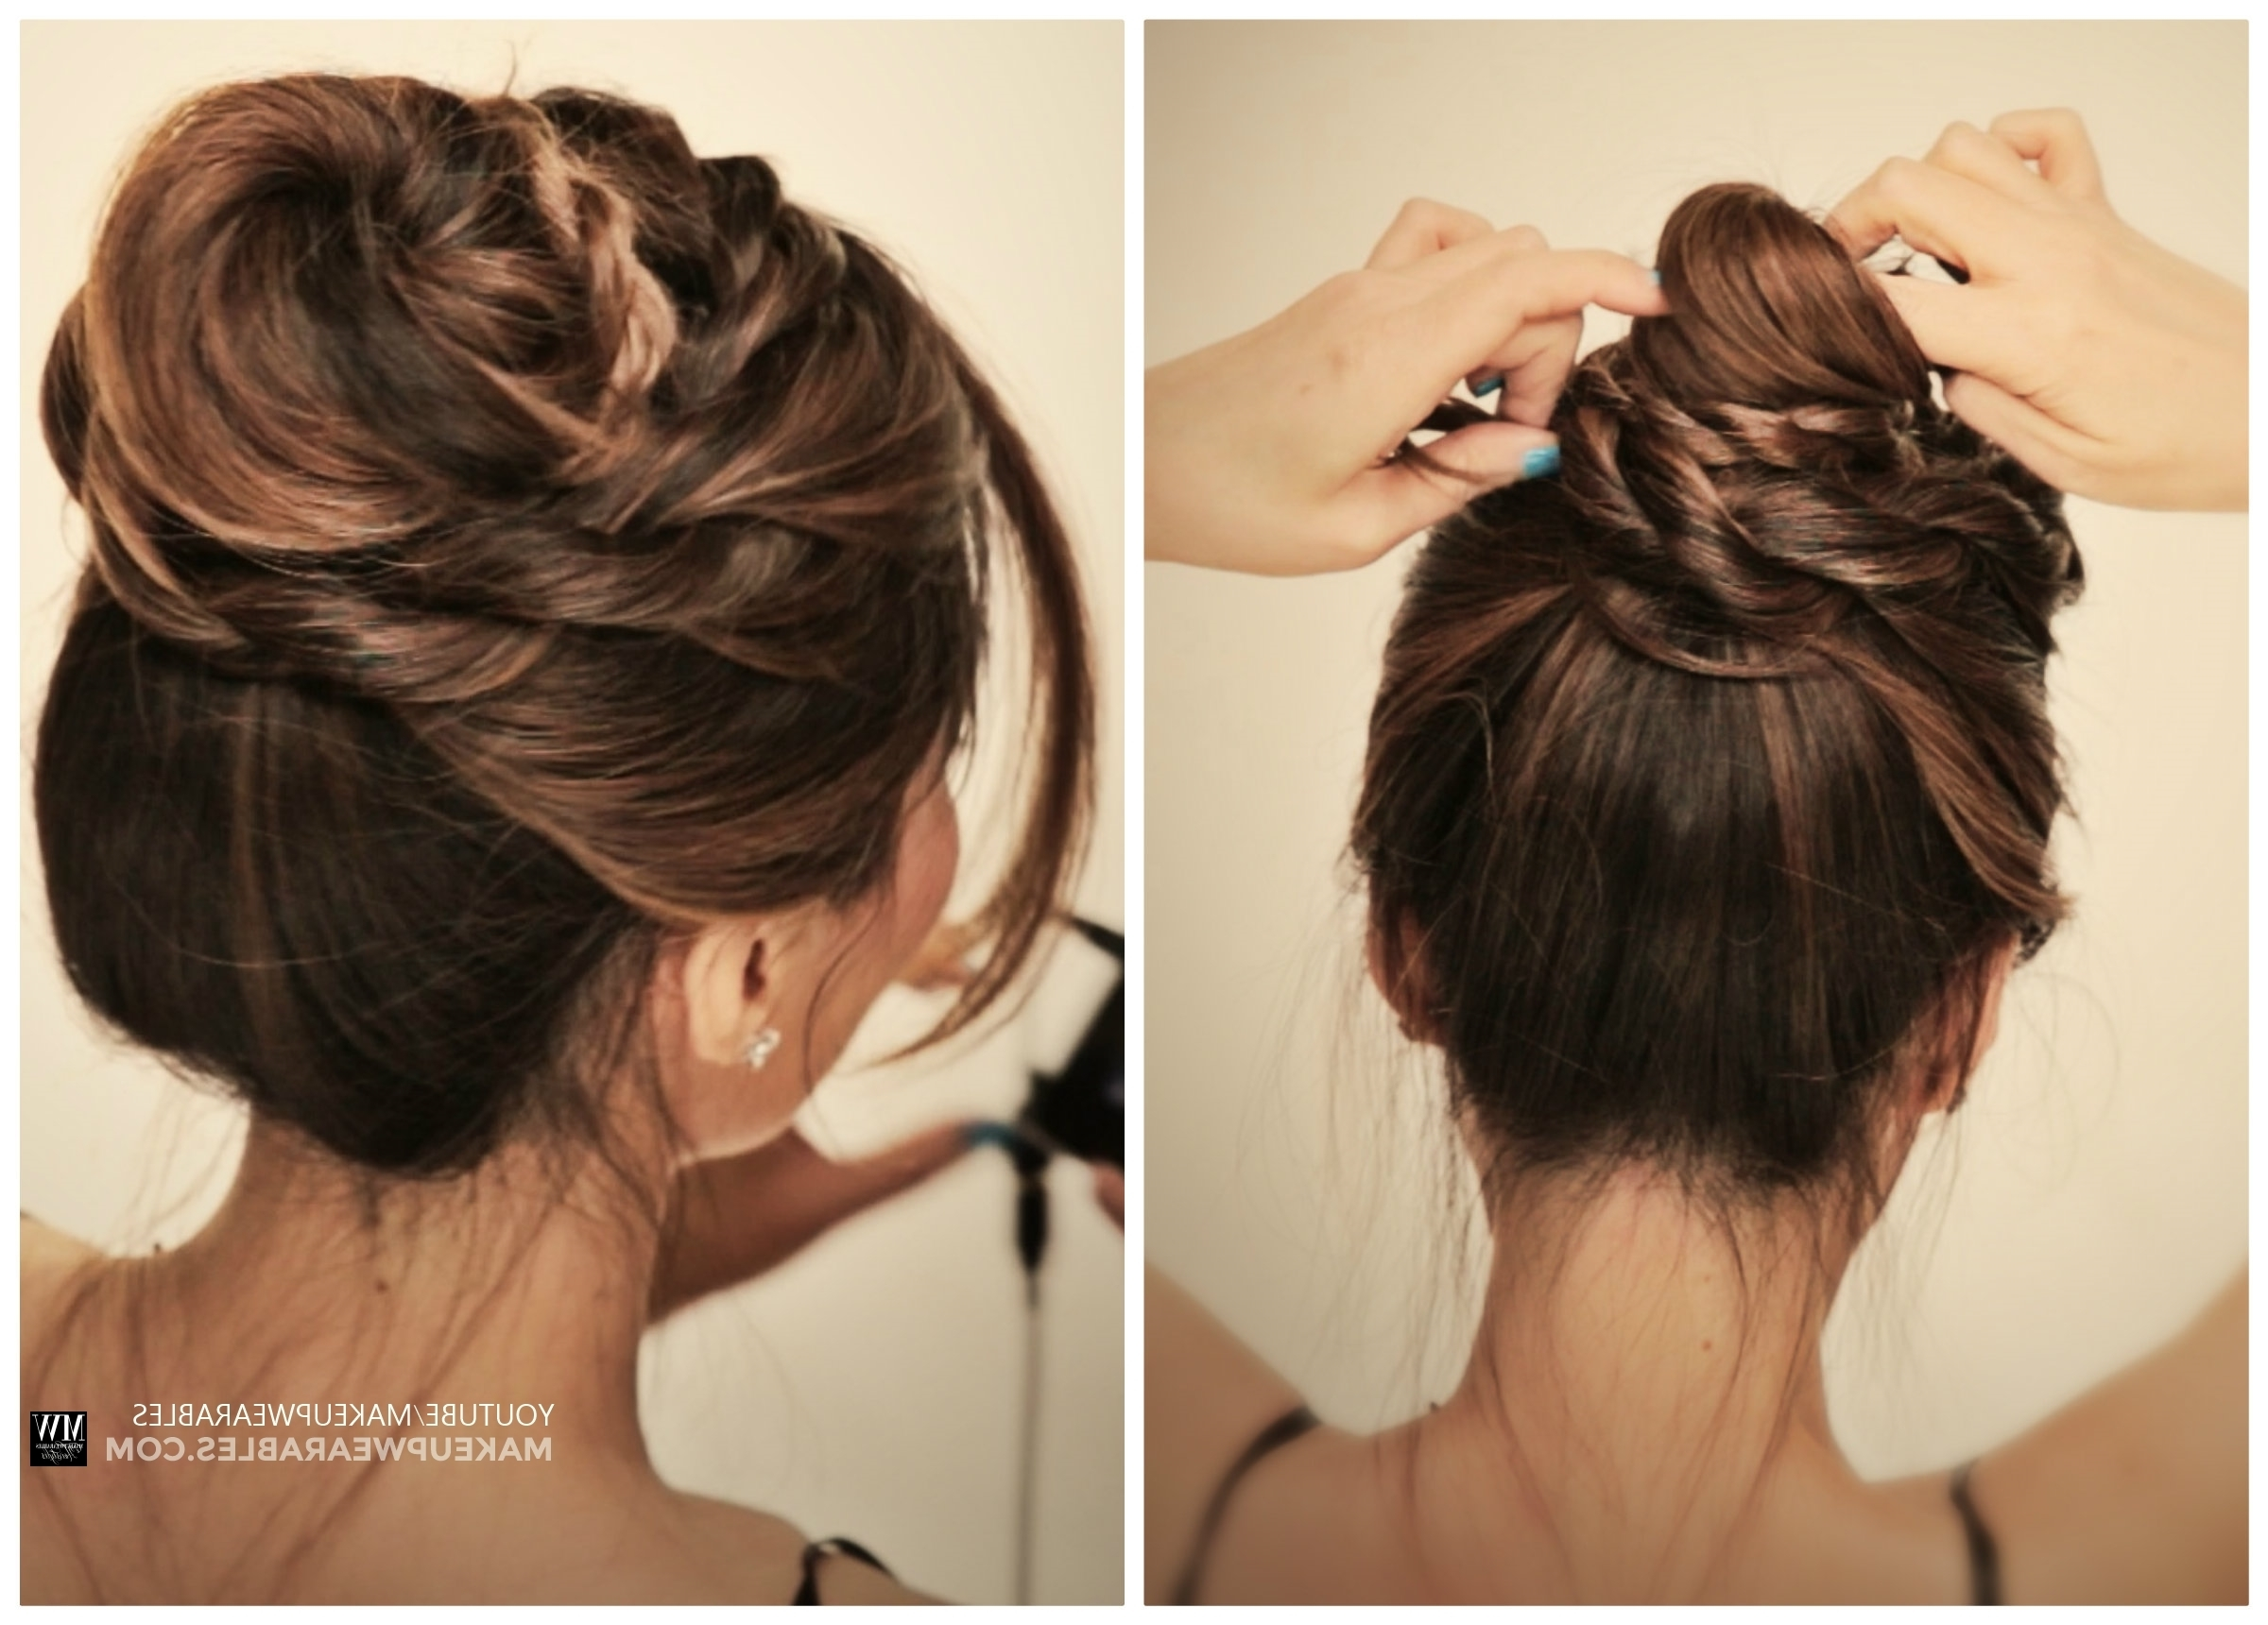 Cute Messy Bun Braids Ballerina Twisted Updo Hairstyle | Medium Hair With Regard To Easy Updo Hairstyles (View 9 of 15)